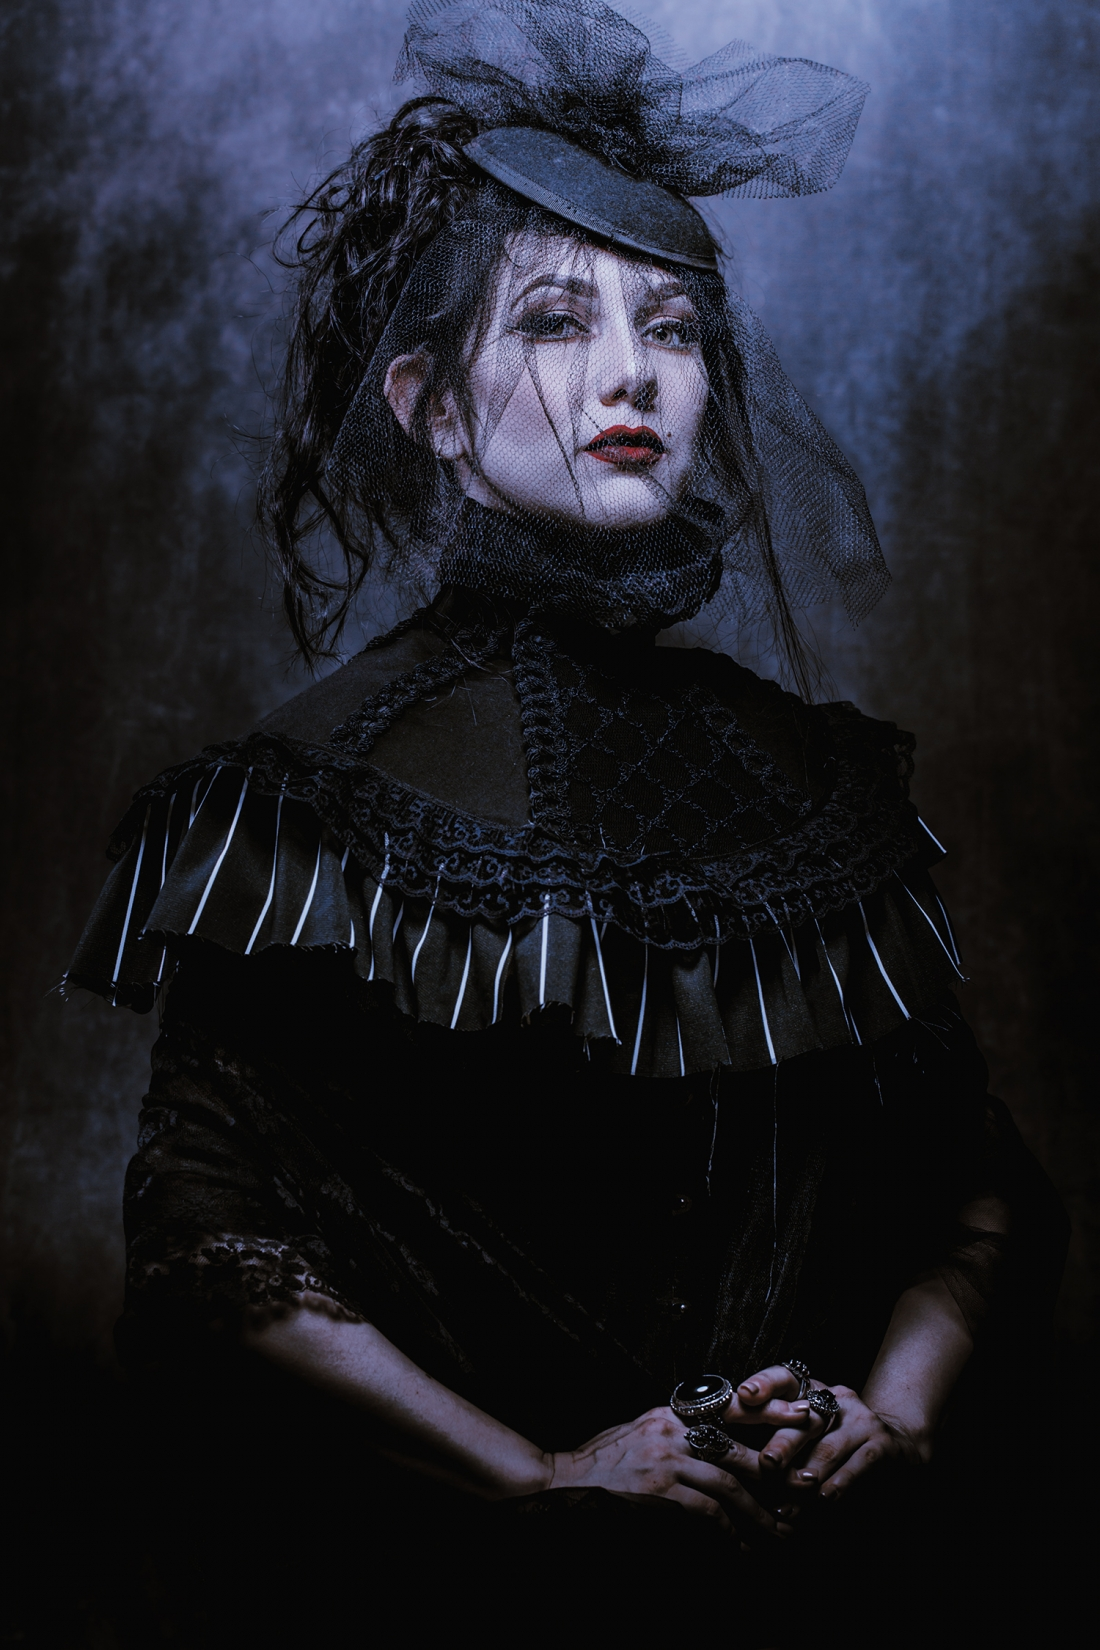 Painted Haunting Portraits Mix With Dark Fine Art Imagery For A Modern Take On Gothic